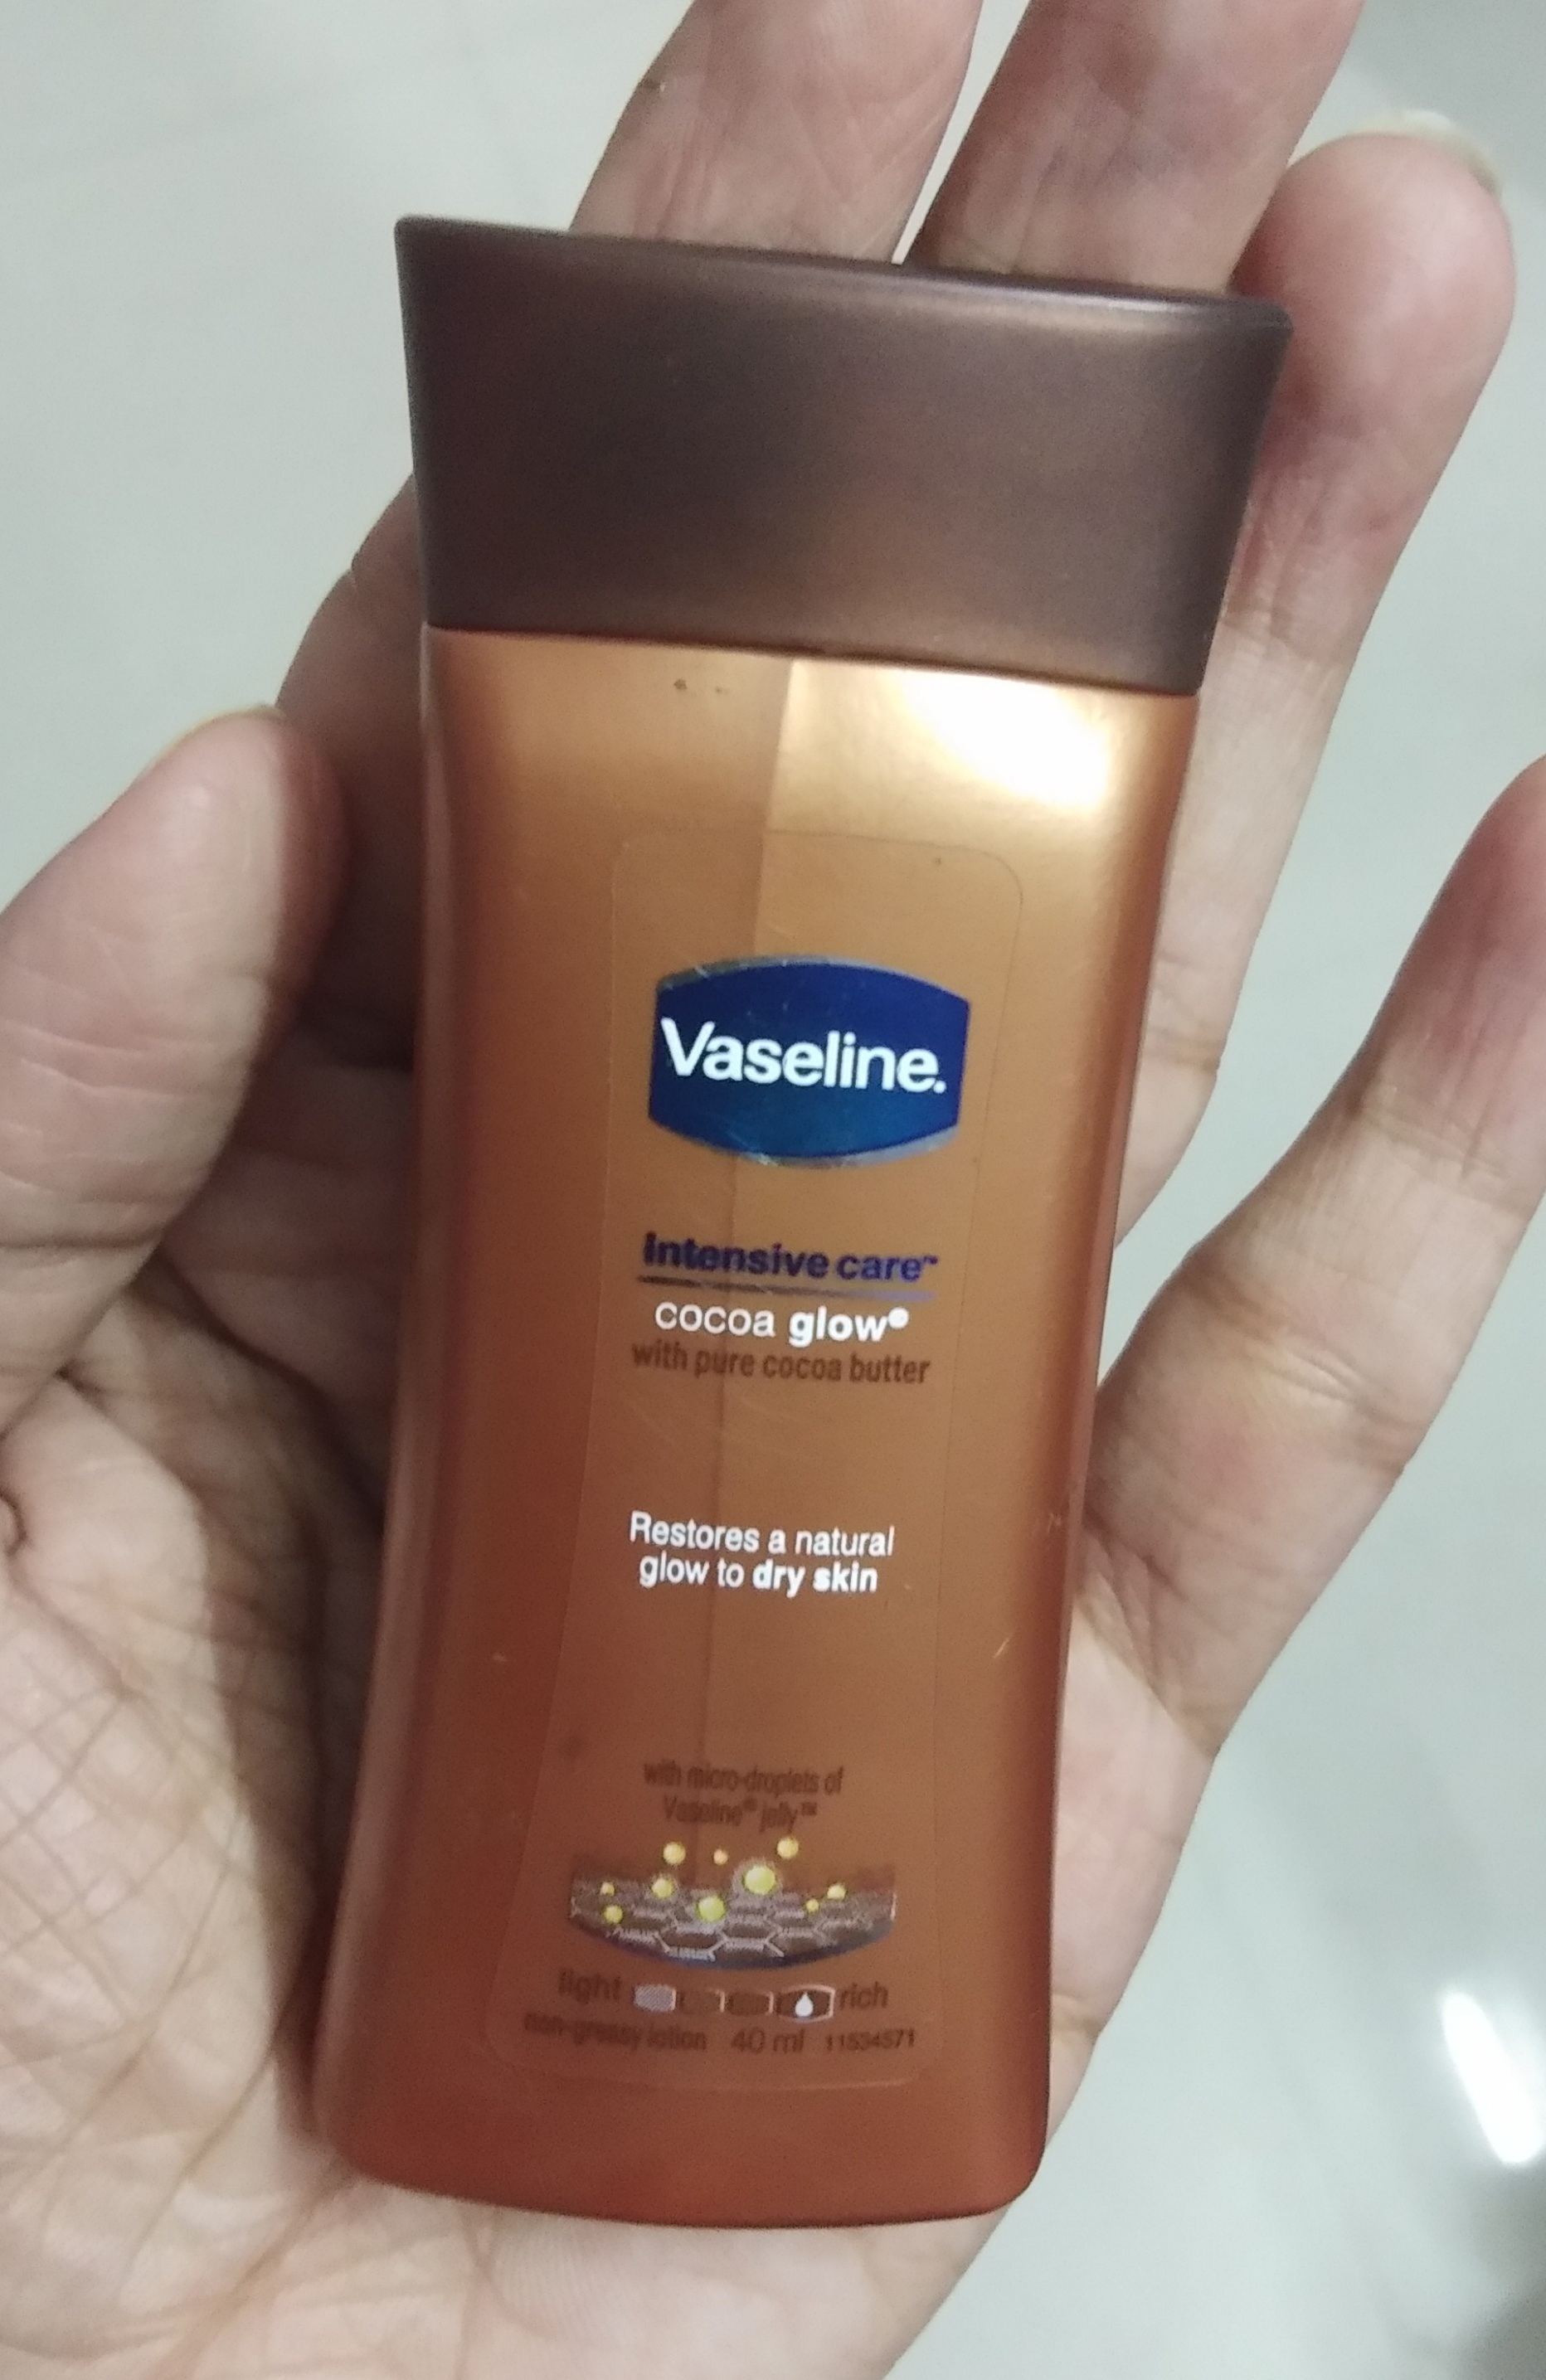 Vaseline Intensive Care Cocoa Glow Body Lotion pic 2-Love it-By Nasreen